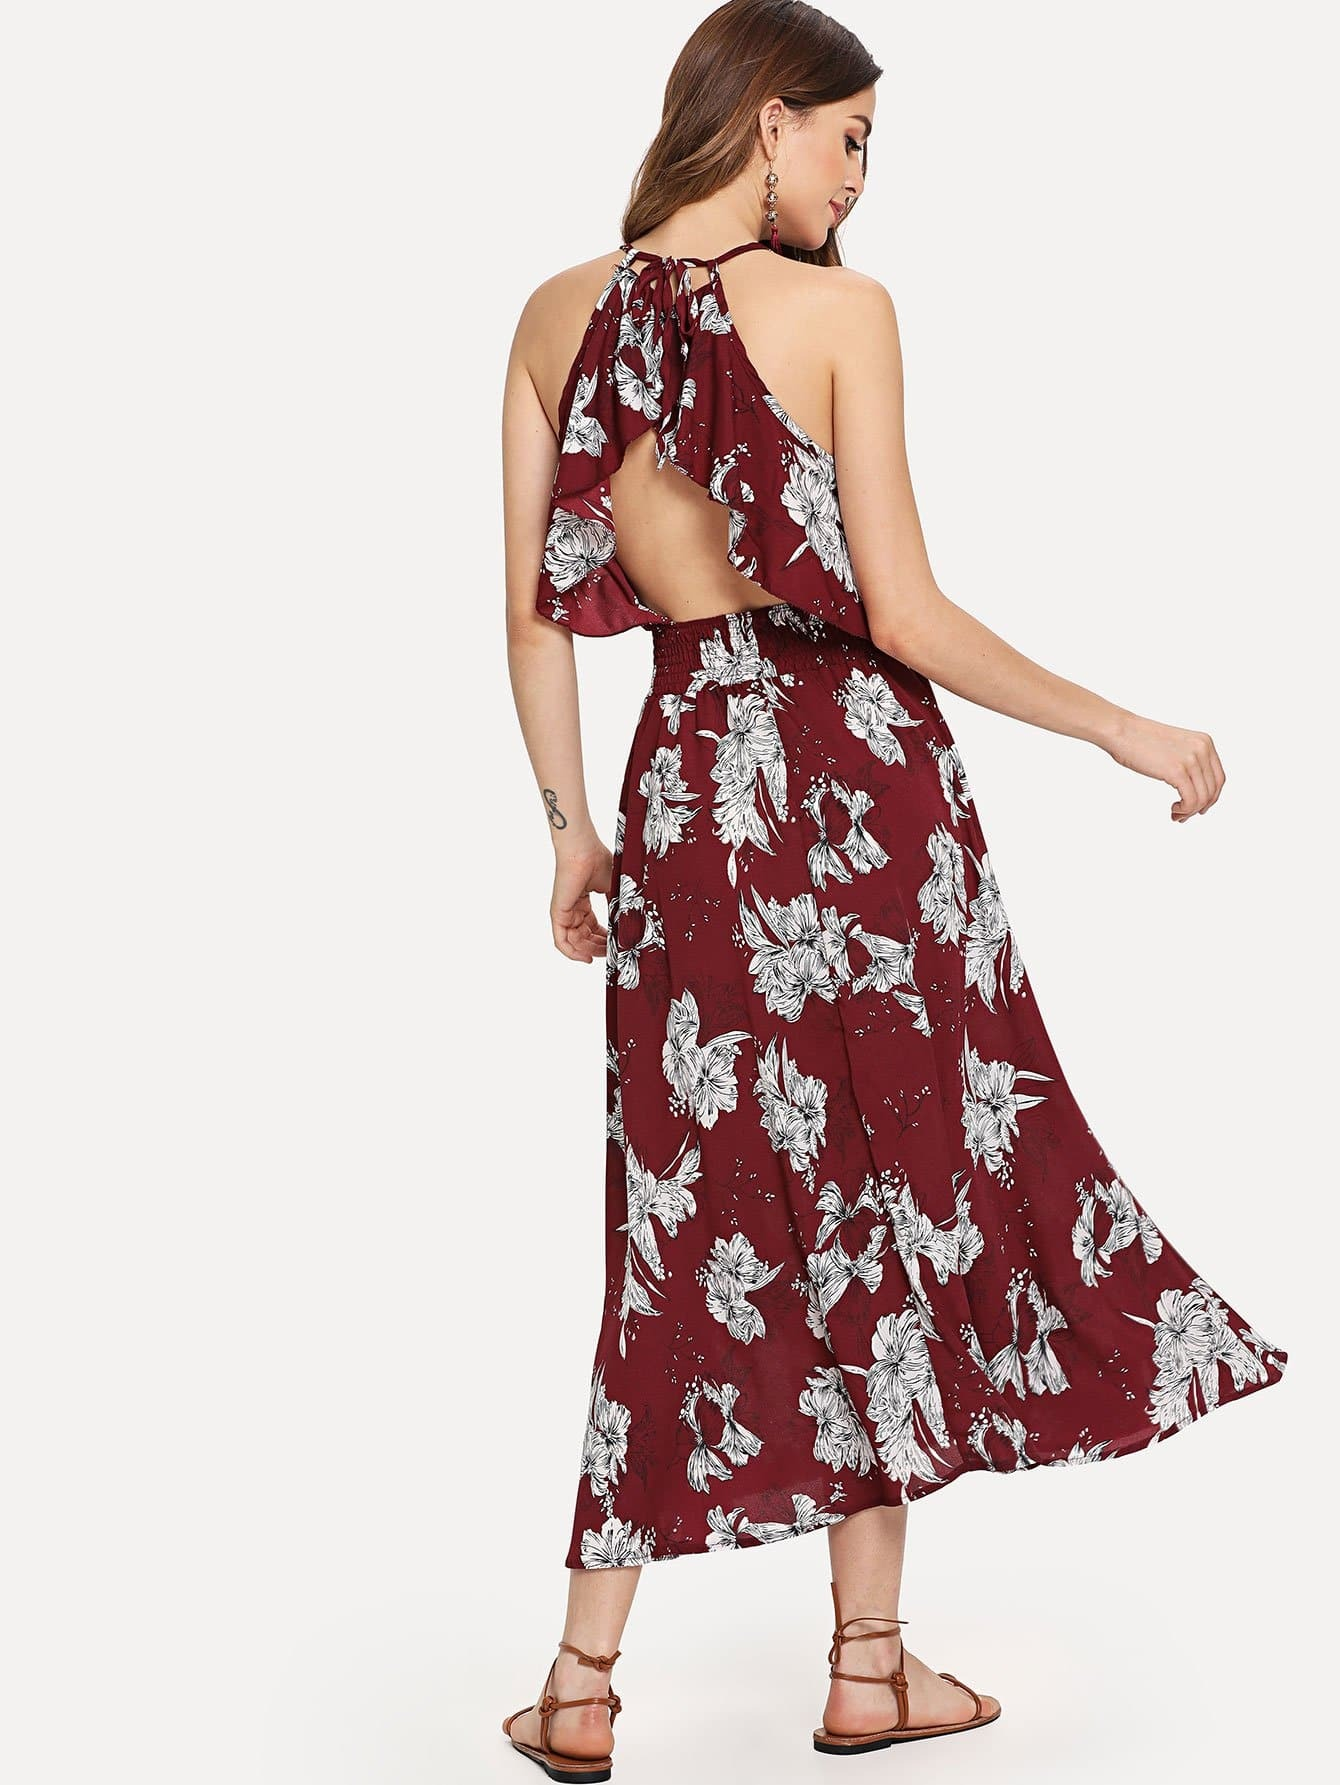 Ruffle Trim Cut Out Back Floral Dress